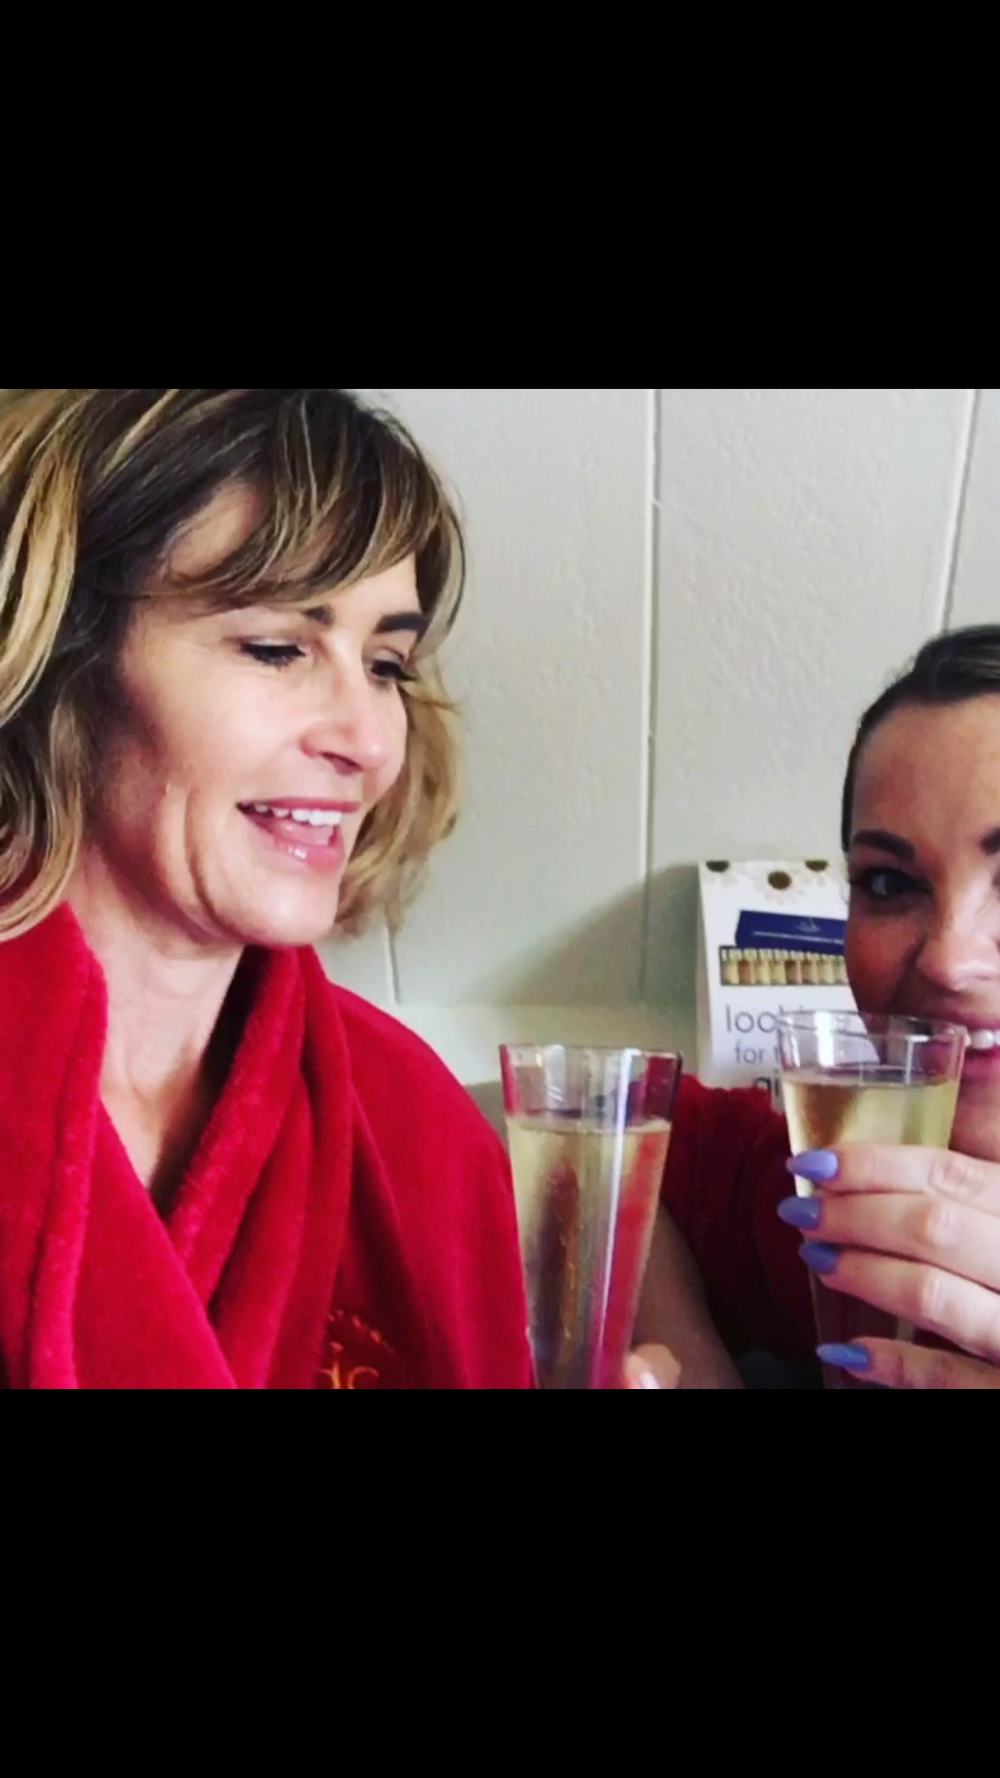 Two woman do a cheers with wine